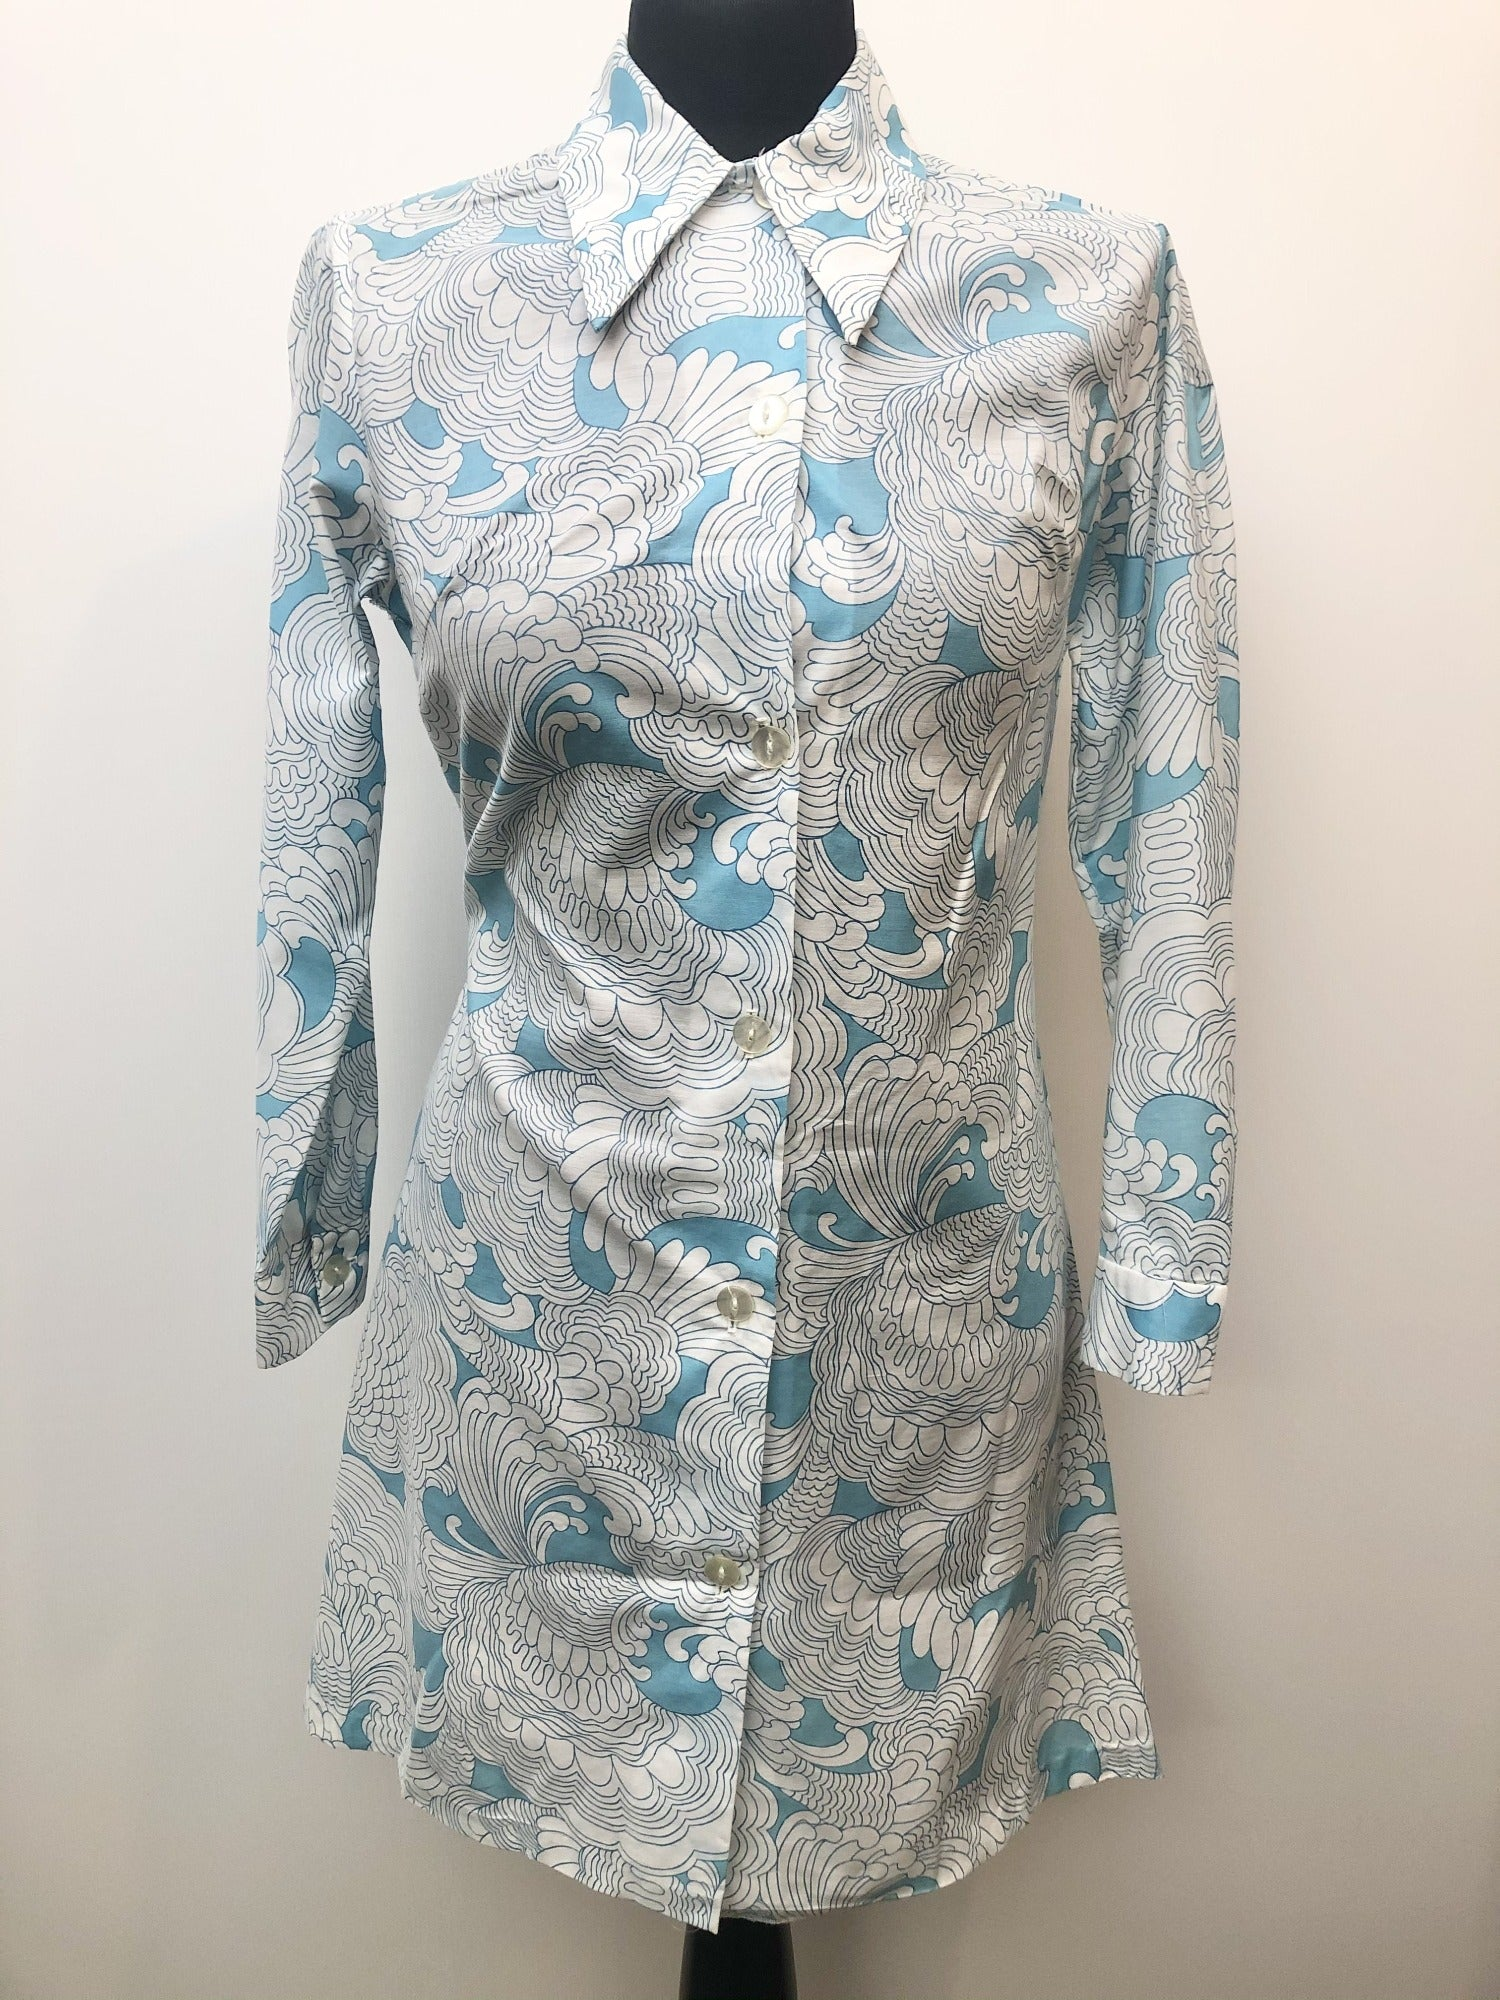 womens  white  vintage  shirt dress  patterned  MOD  dress  blue  60s  1960s  12 urban village vintage